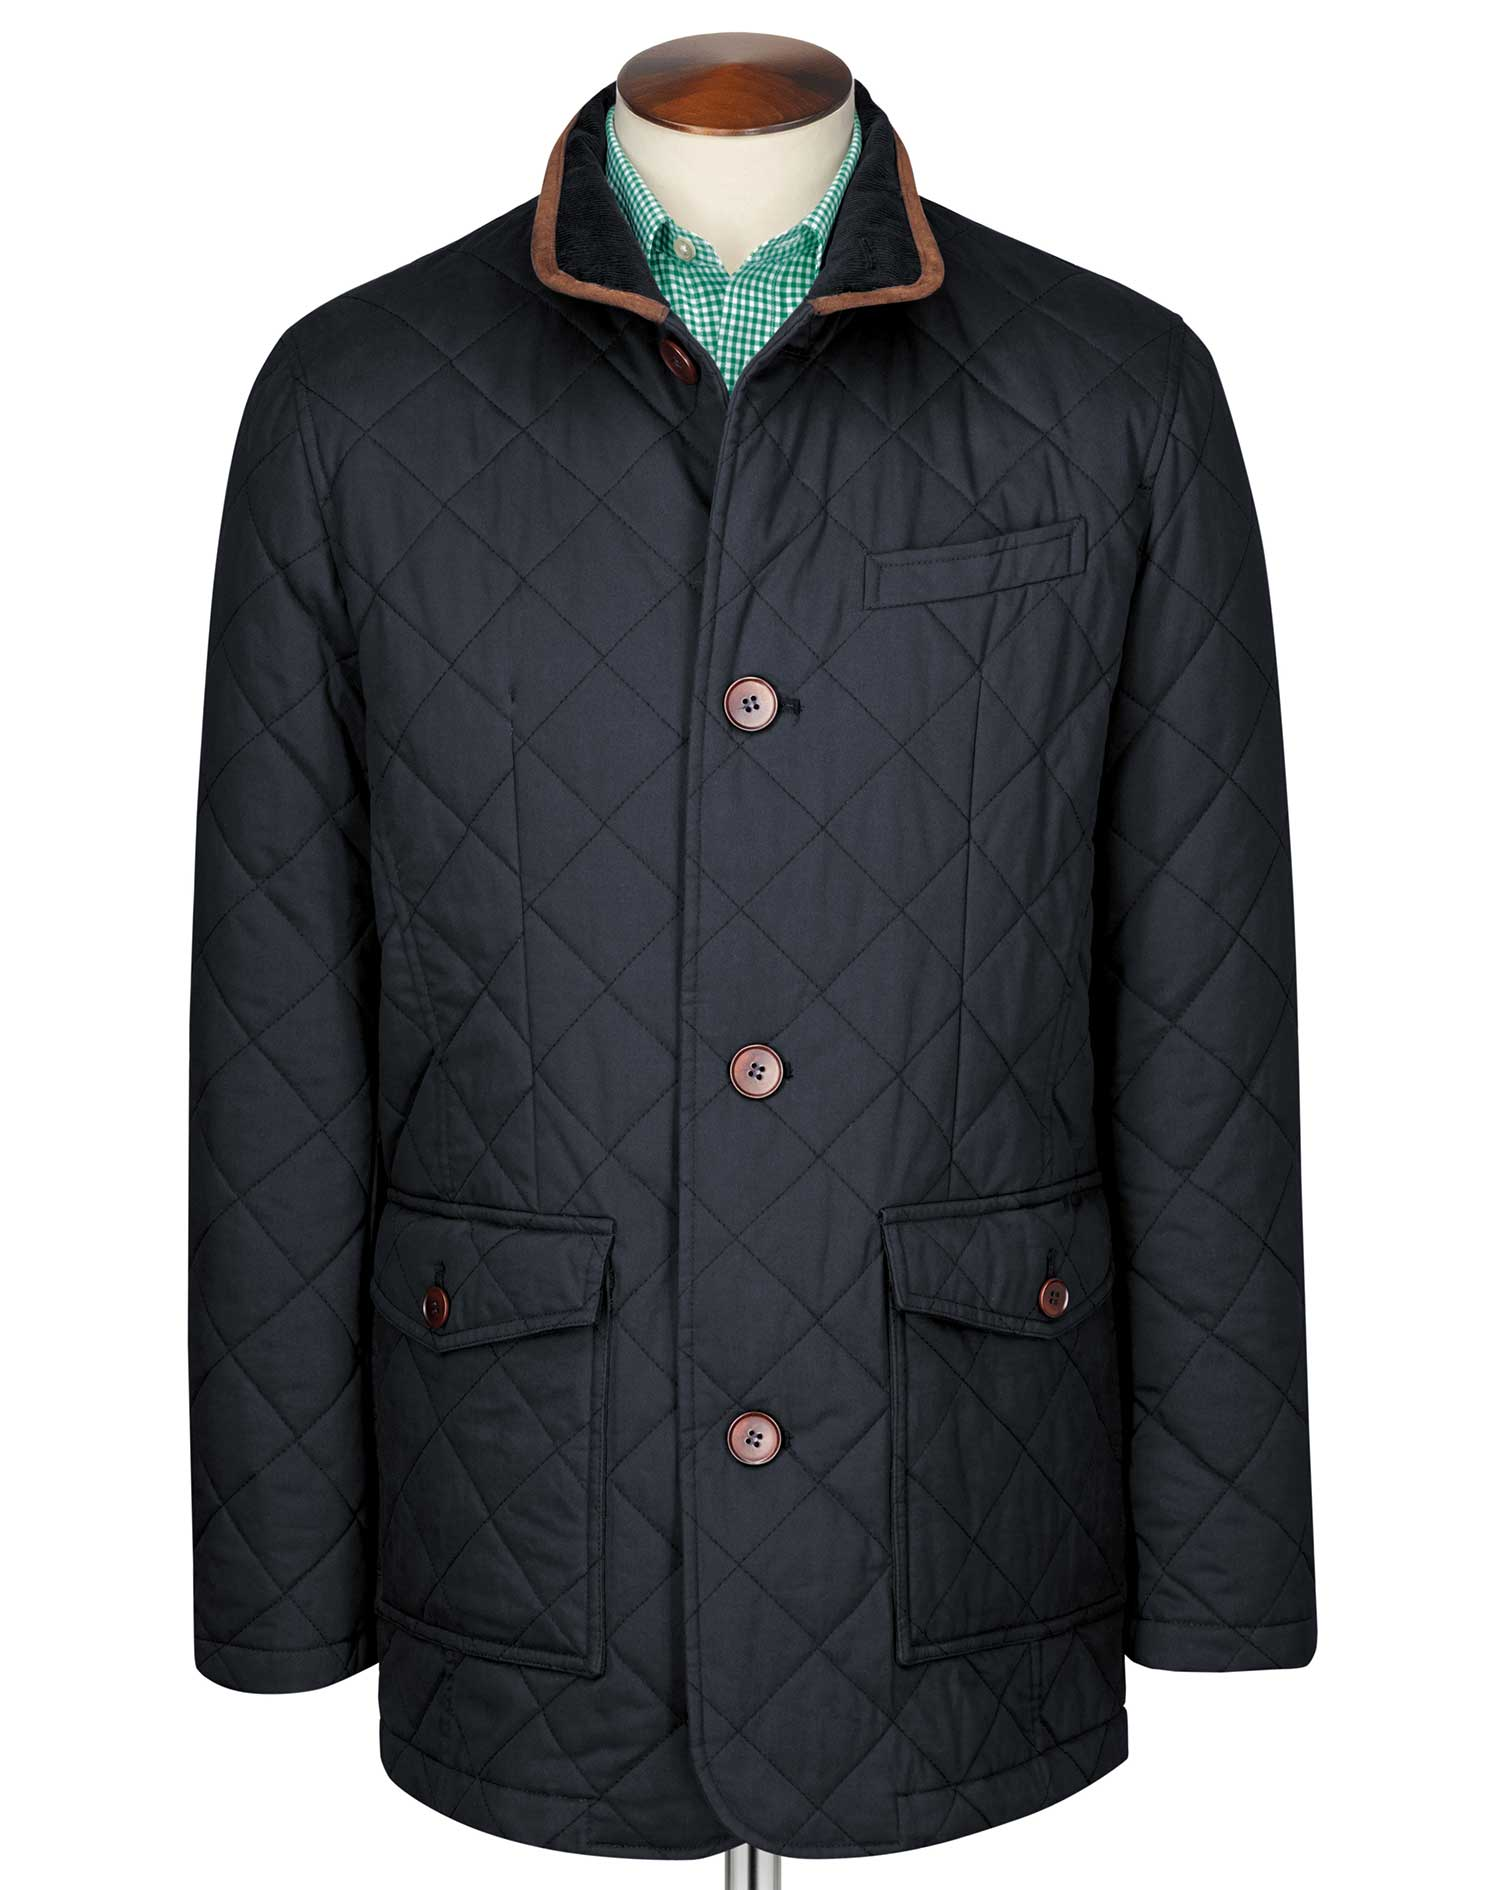 Navy Quilted Cotton Jacket Size 36 Regular by Charles Tyrwhitt